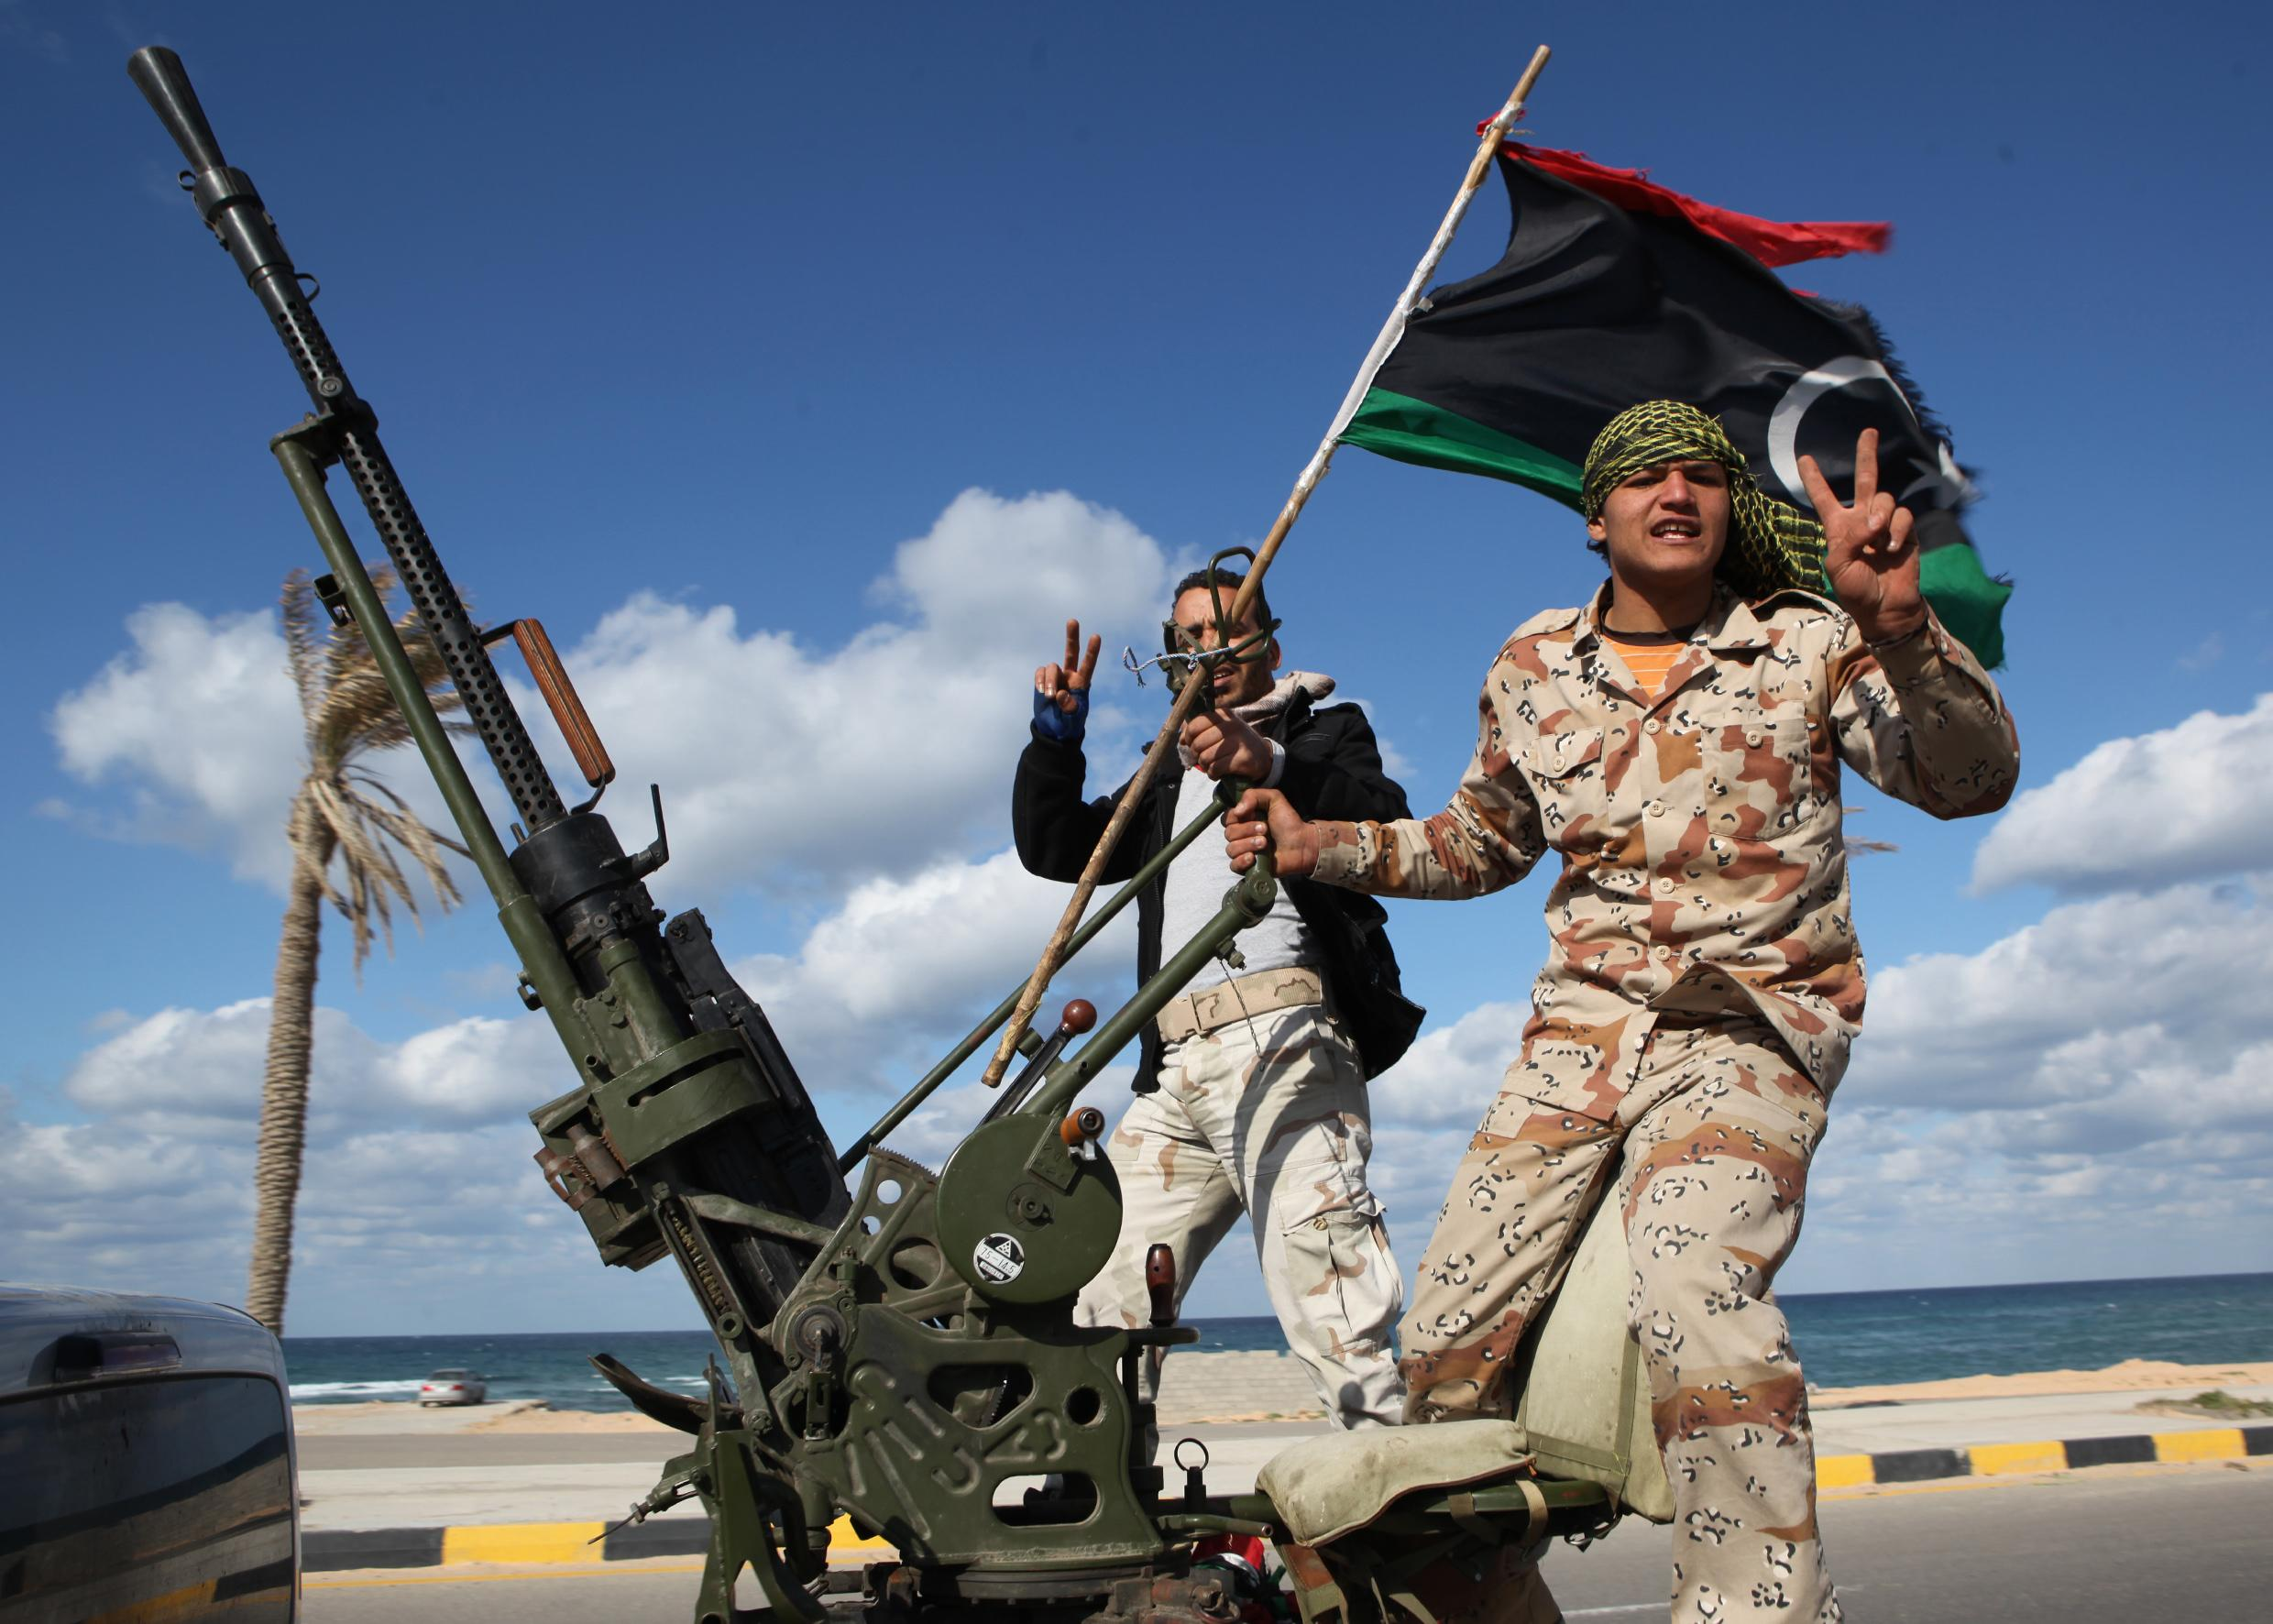 FILE - In this Tuesday Feb. 14, 2012 file photo, Libyan militias from towns throughout the country's west parade through Tripoli, Libya. At the heart of the Libyan capital, the open-air Fish Market was once where residents went to buy everything from meat and seafood to clothes and pets. Now it's Tripoli's biggest arms market, with tables displaying pistols and assault rifles. Ask a vendor, and he can pull out bigger machine guns to sell for thousands of dollars. (AP Photo/Abdel Magid Al Fergany, File)